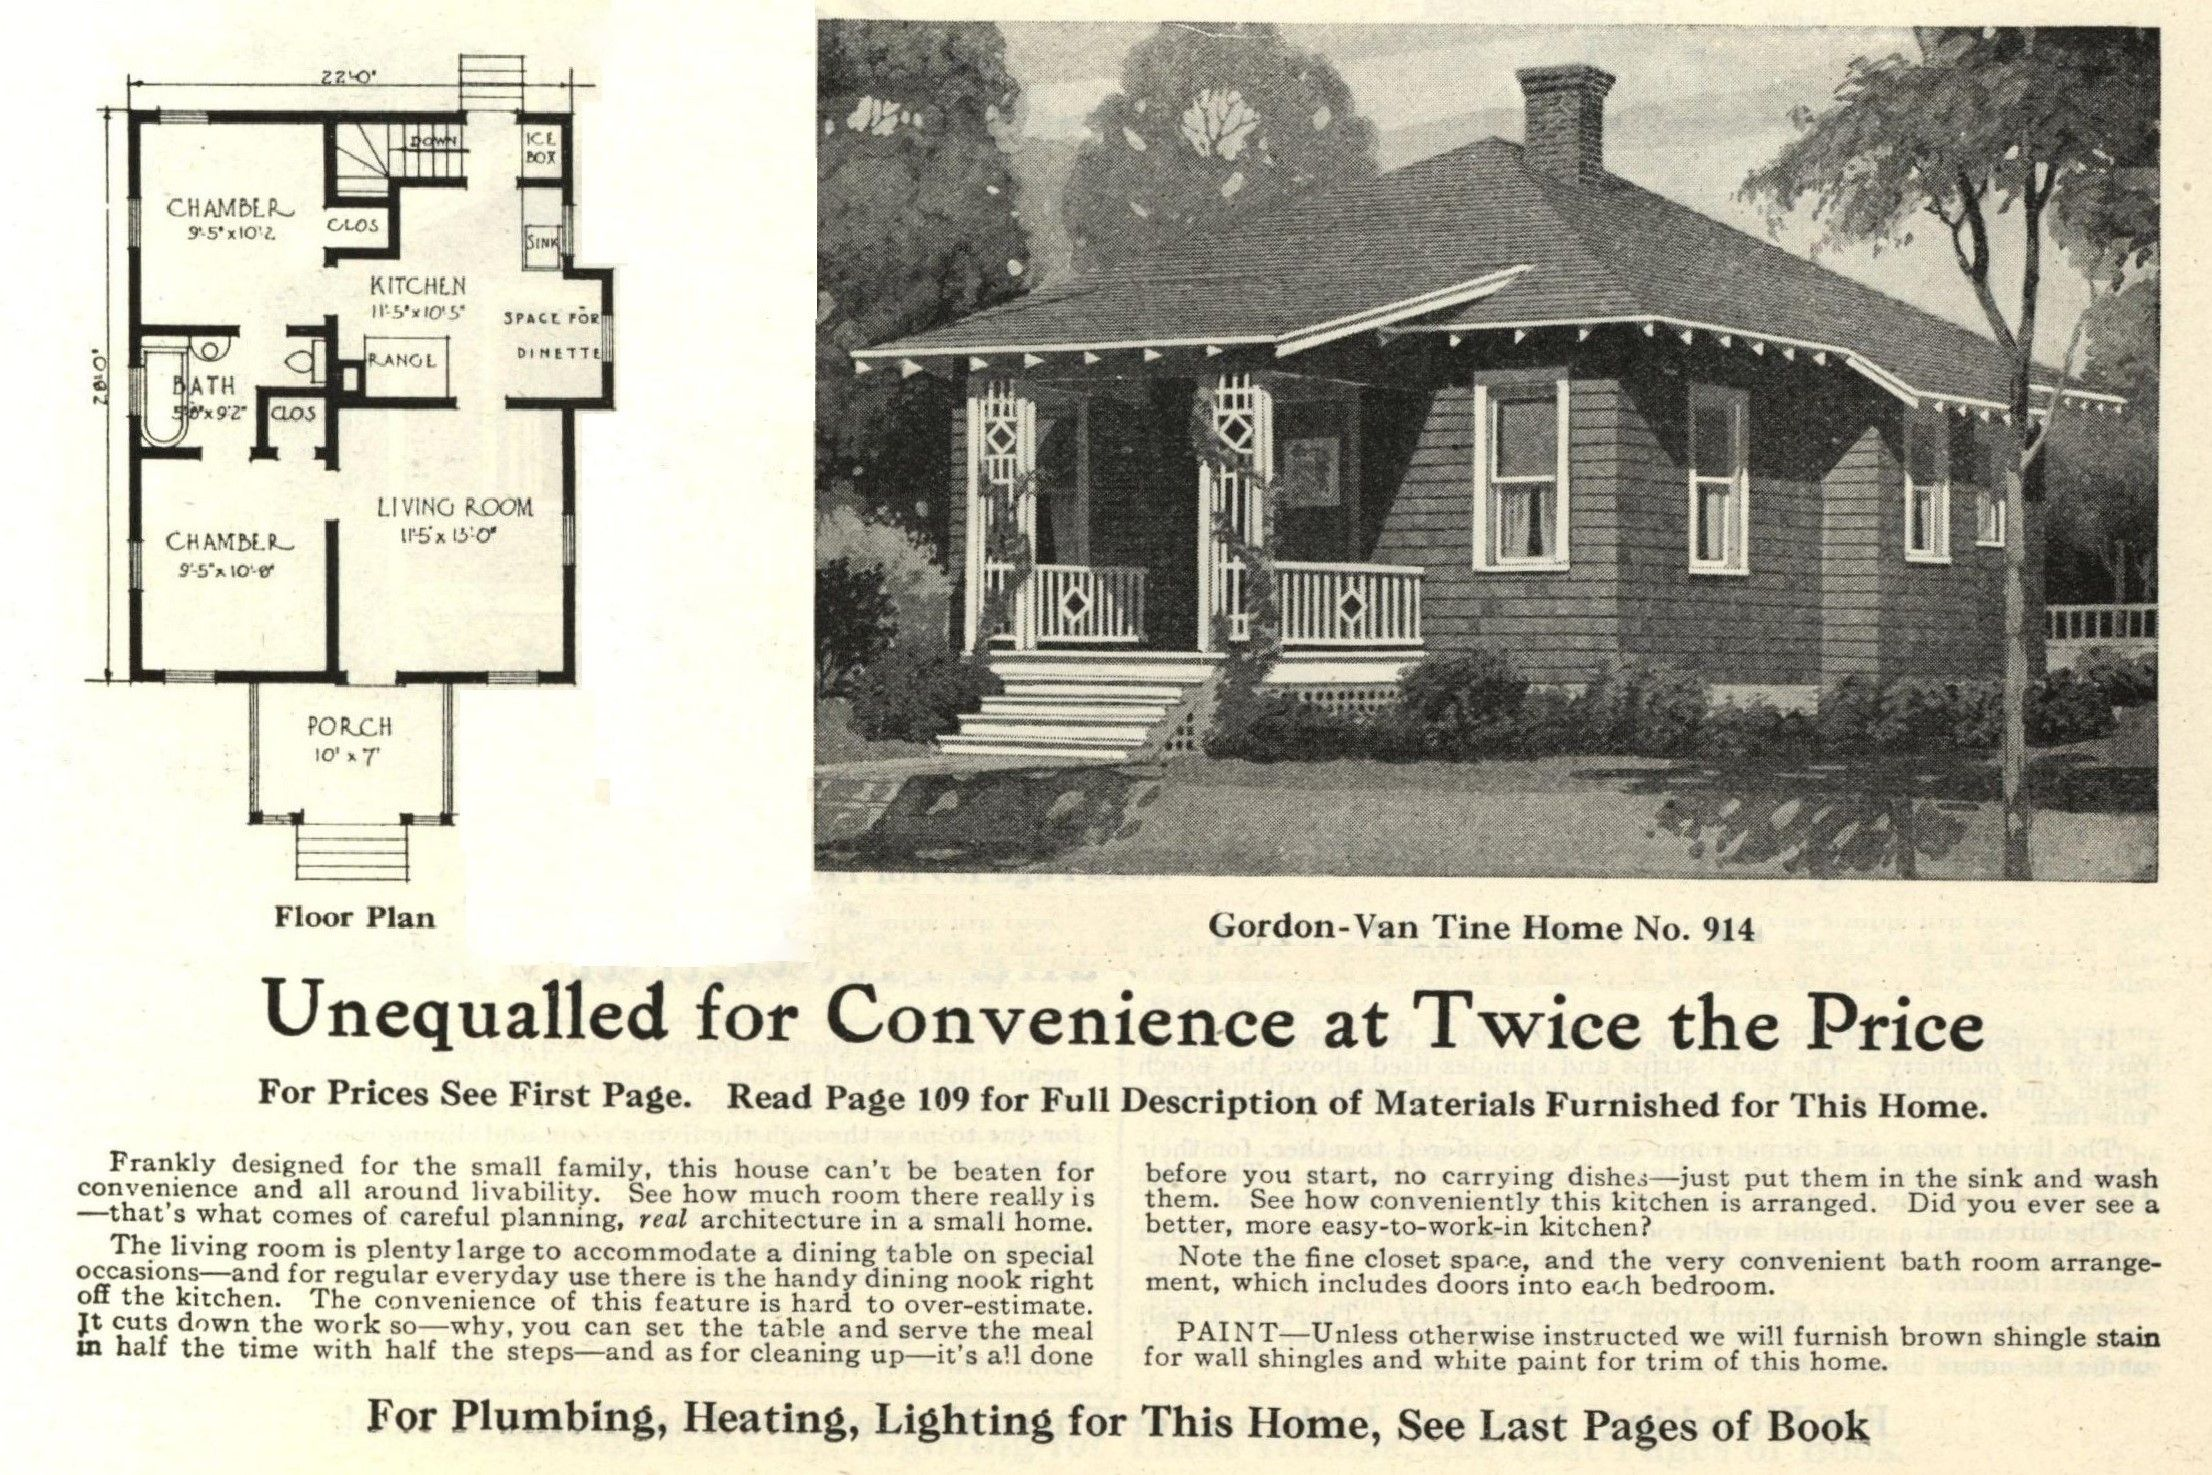 This is the 914 as seen in the Gordon Van Tine 1926 catalog. It appears in 1923 as number 583. it's a cute cottage.